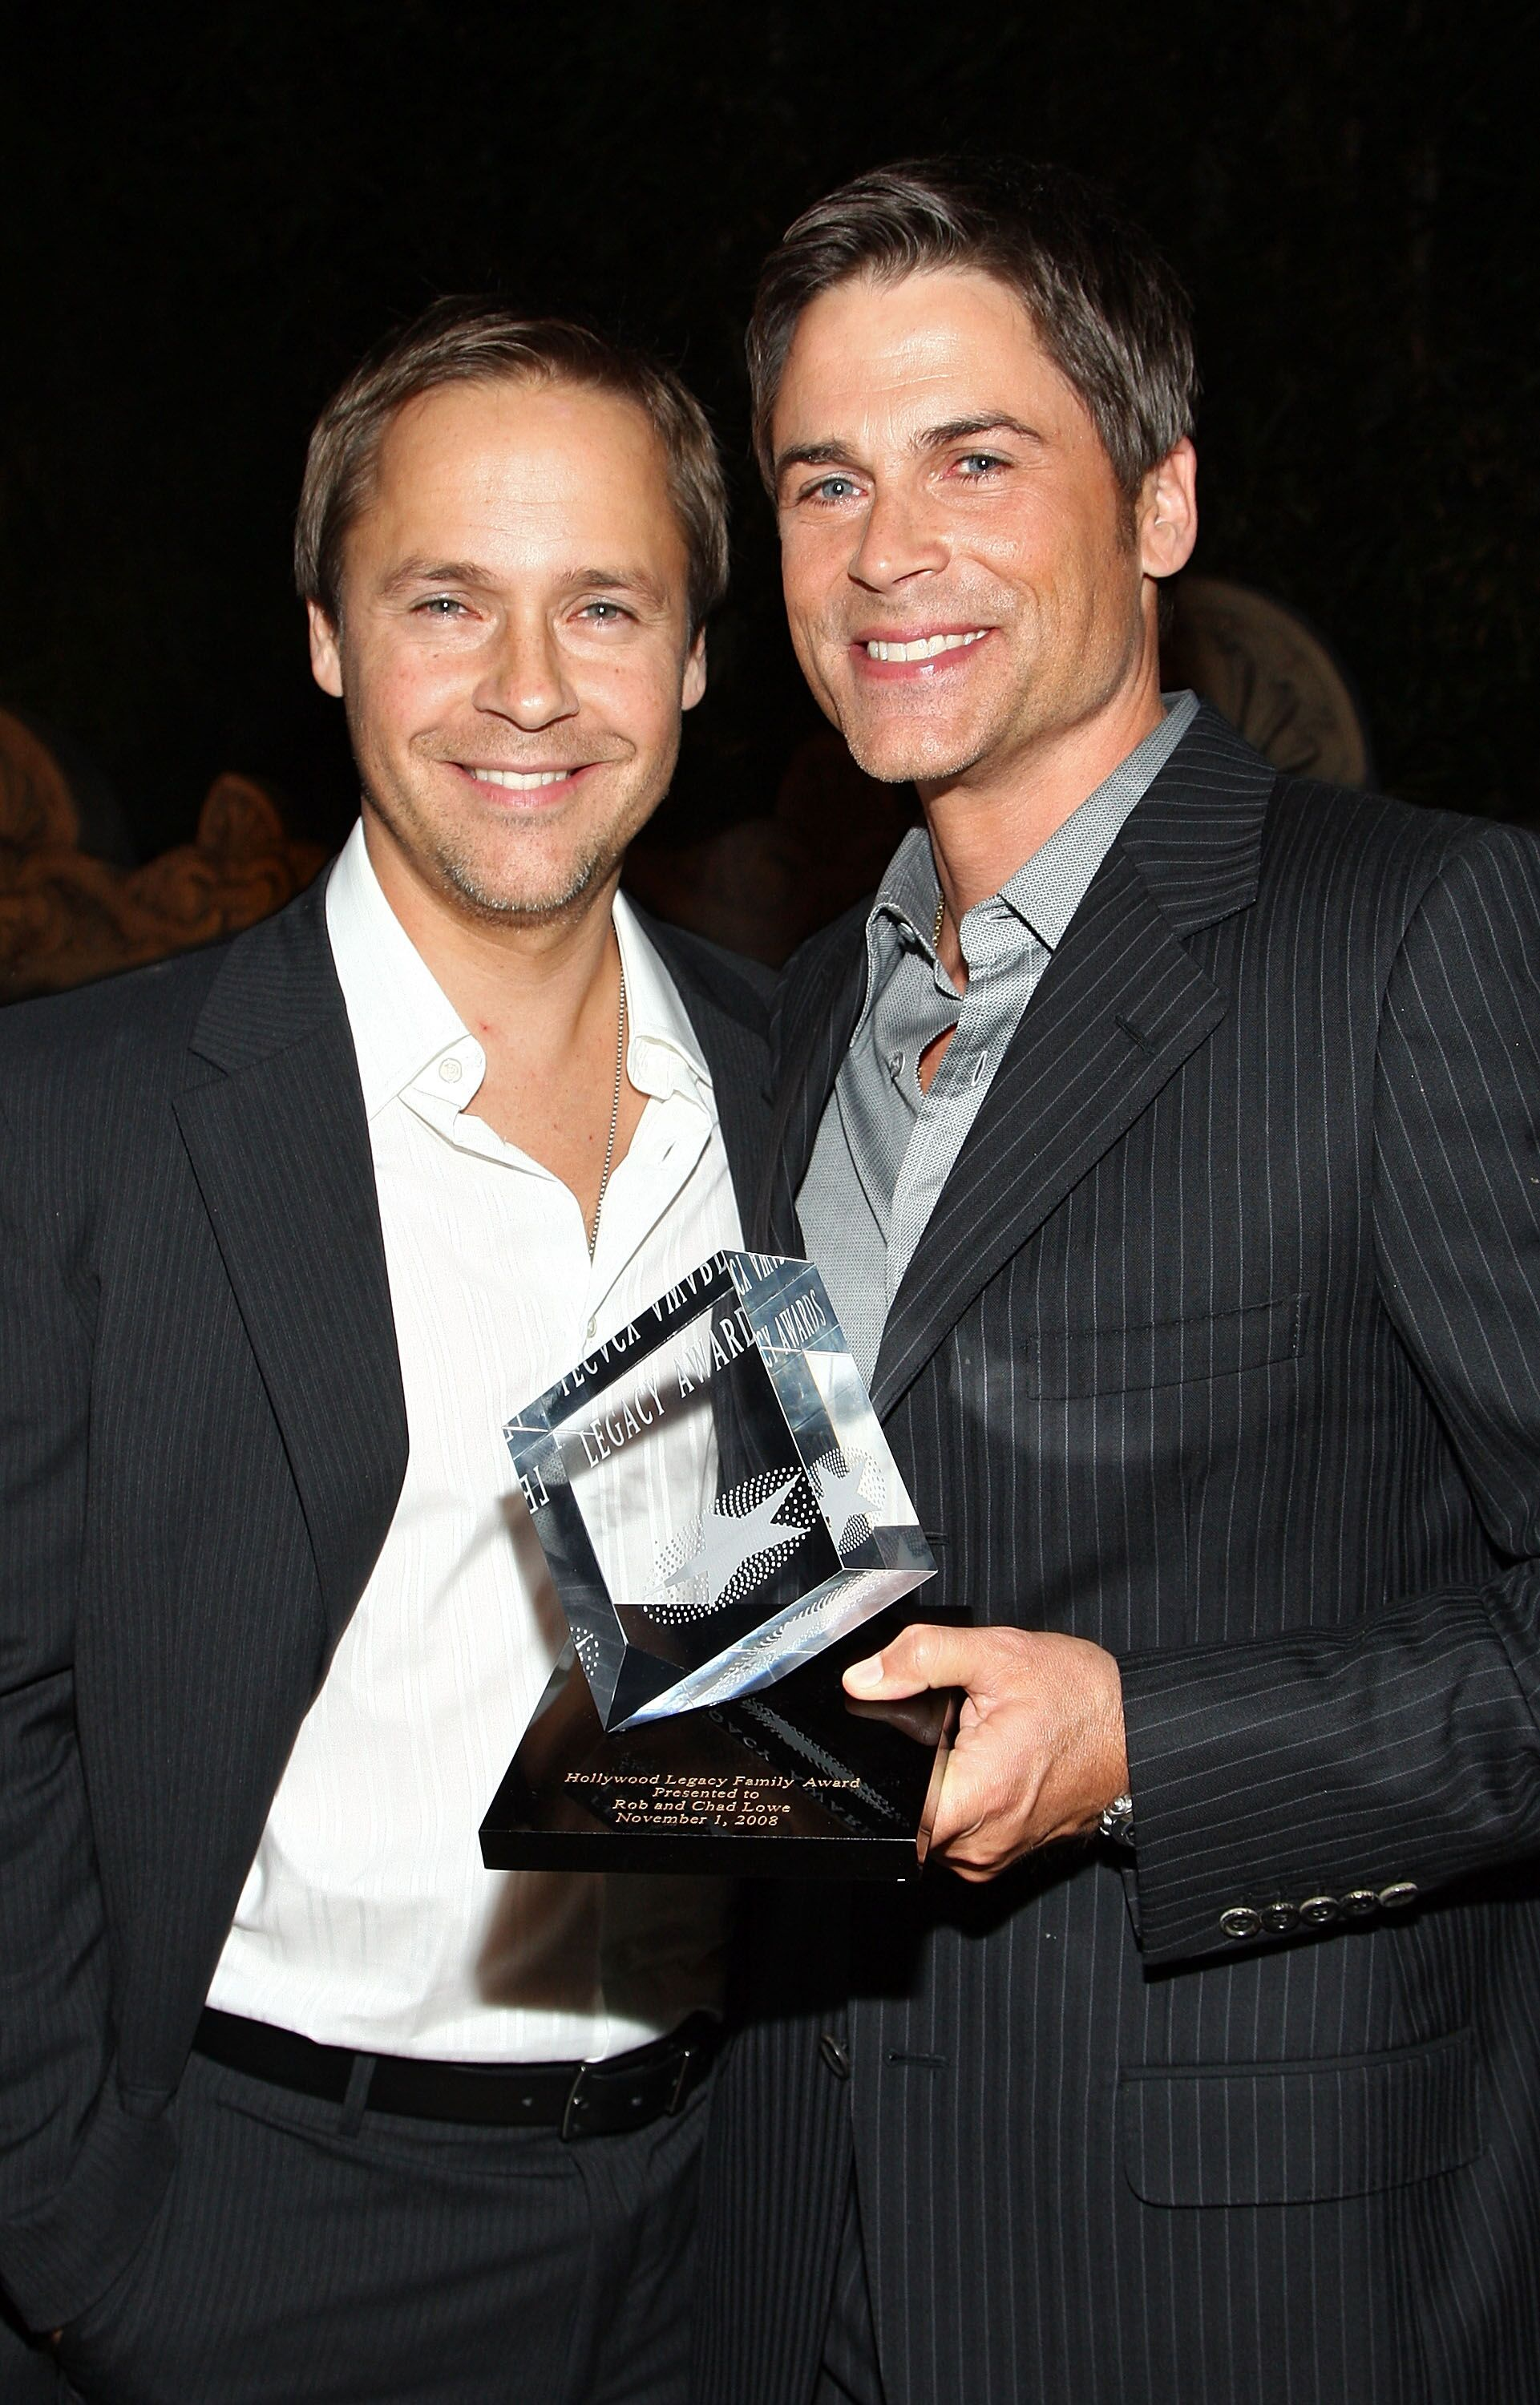 Actors Chad (L) and Rob Lowe attend the Hollywood Entertainment Museum's Hollywood Legacy Awards XI held at the Esquire House Hollywood Hills on November 11, 2008 in Los Angeles, California. | Source: Getty Images